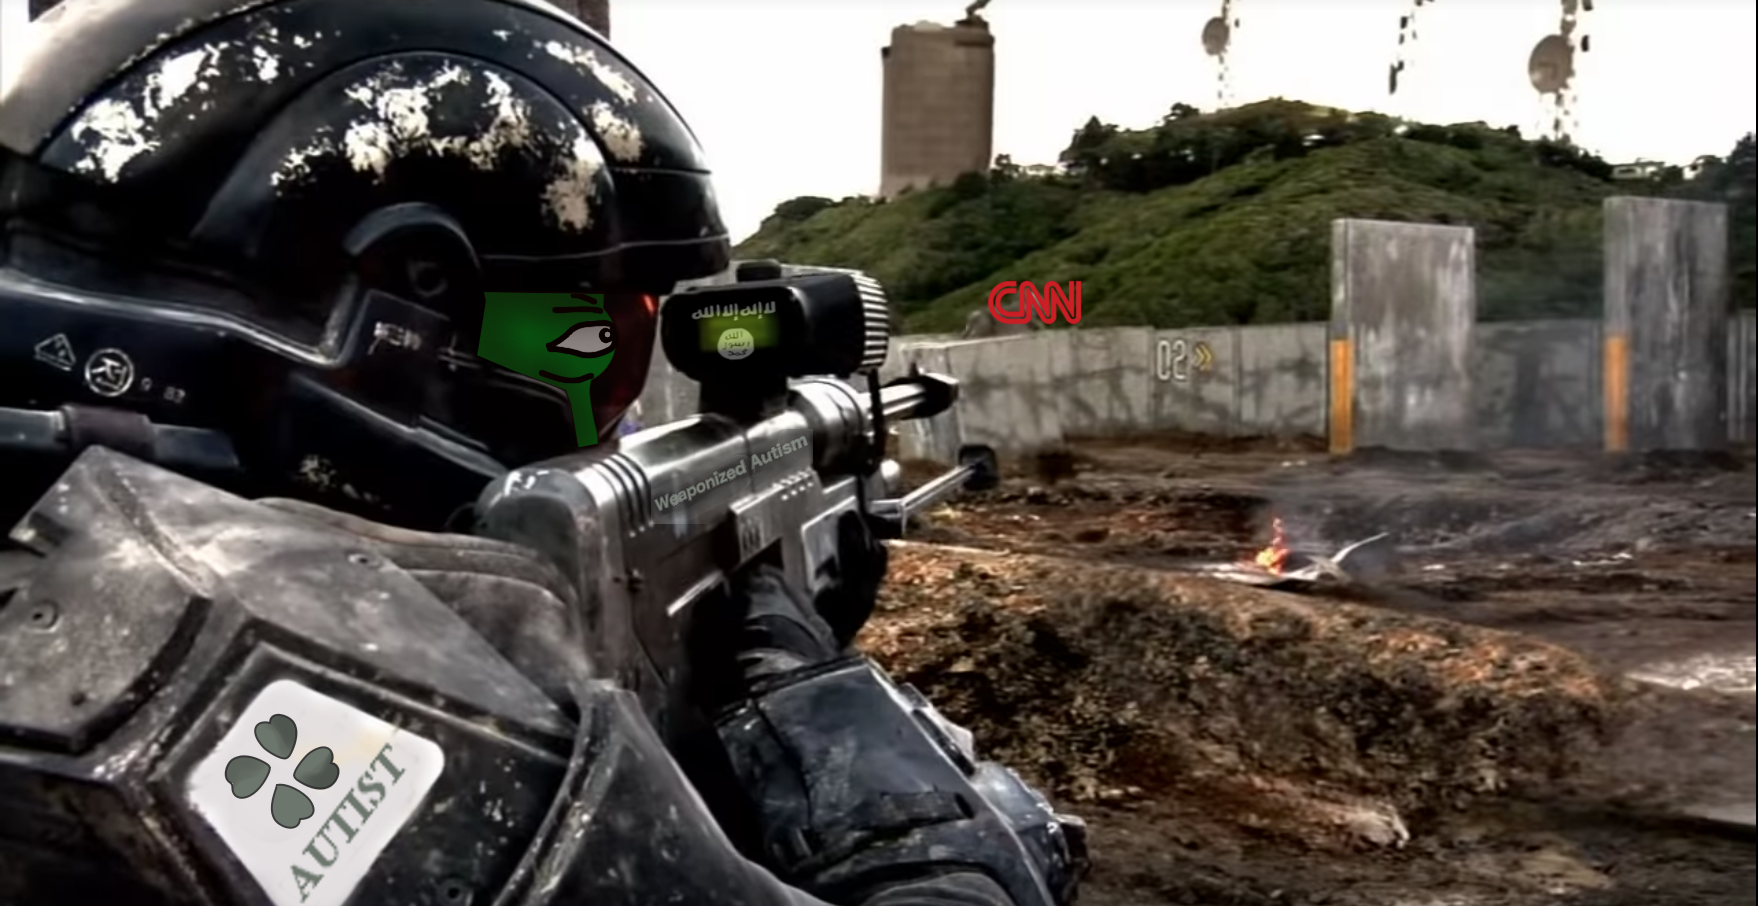 An Autist Sharpshooter During The Cnn Skirmishes Operation